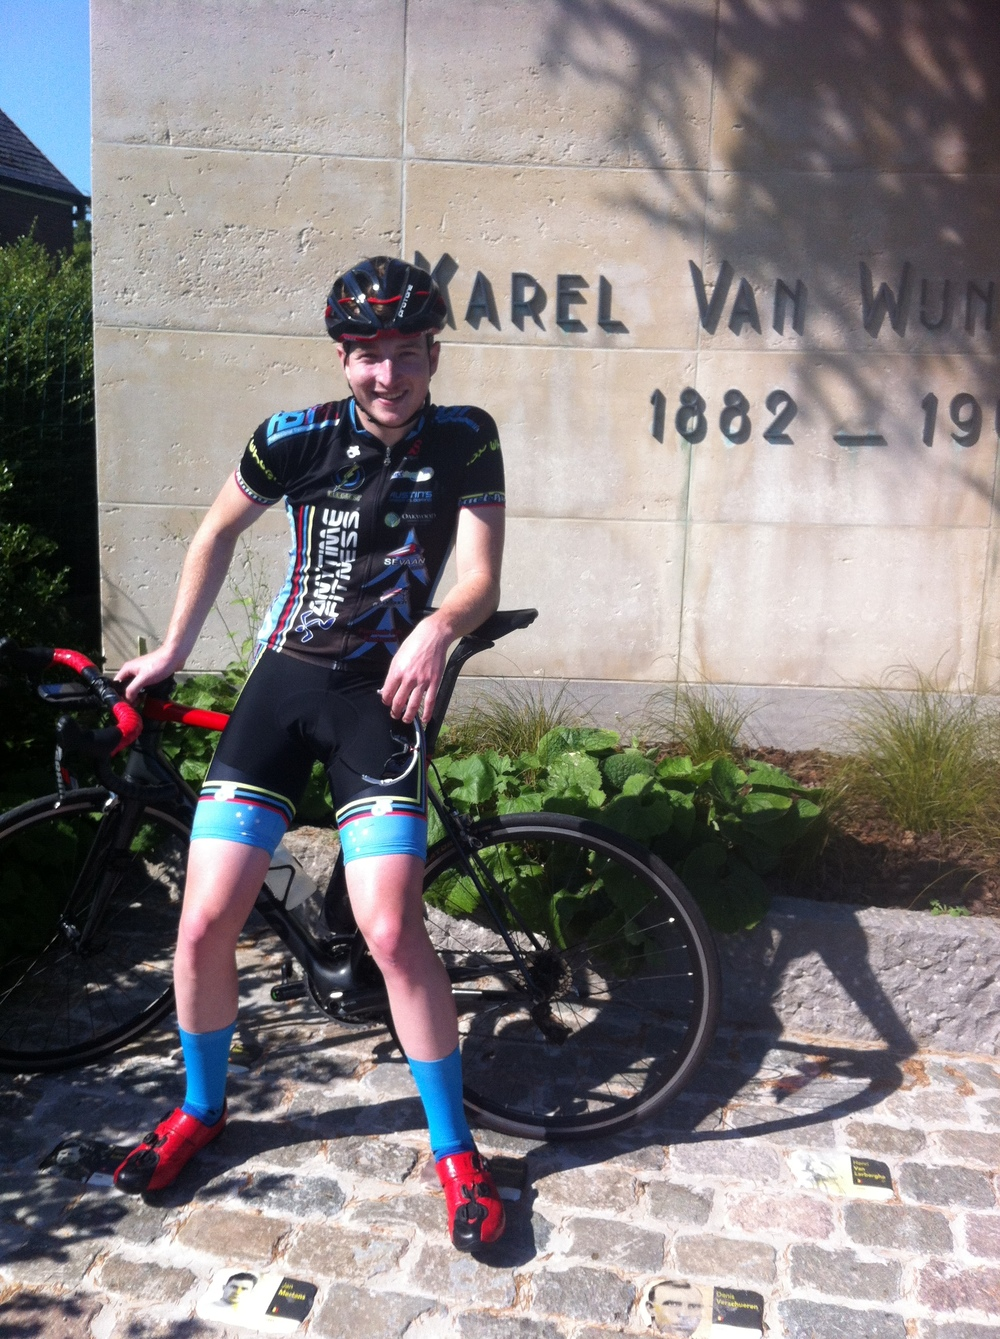 Karel Van Wijndeale Monument at the top of the Old Kwaremont climb (note every winner has a cobble)